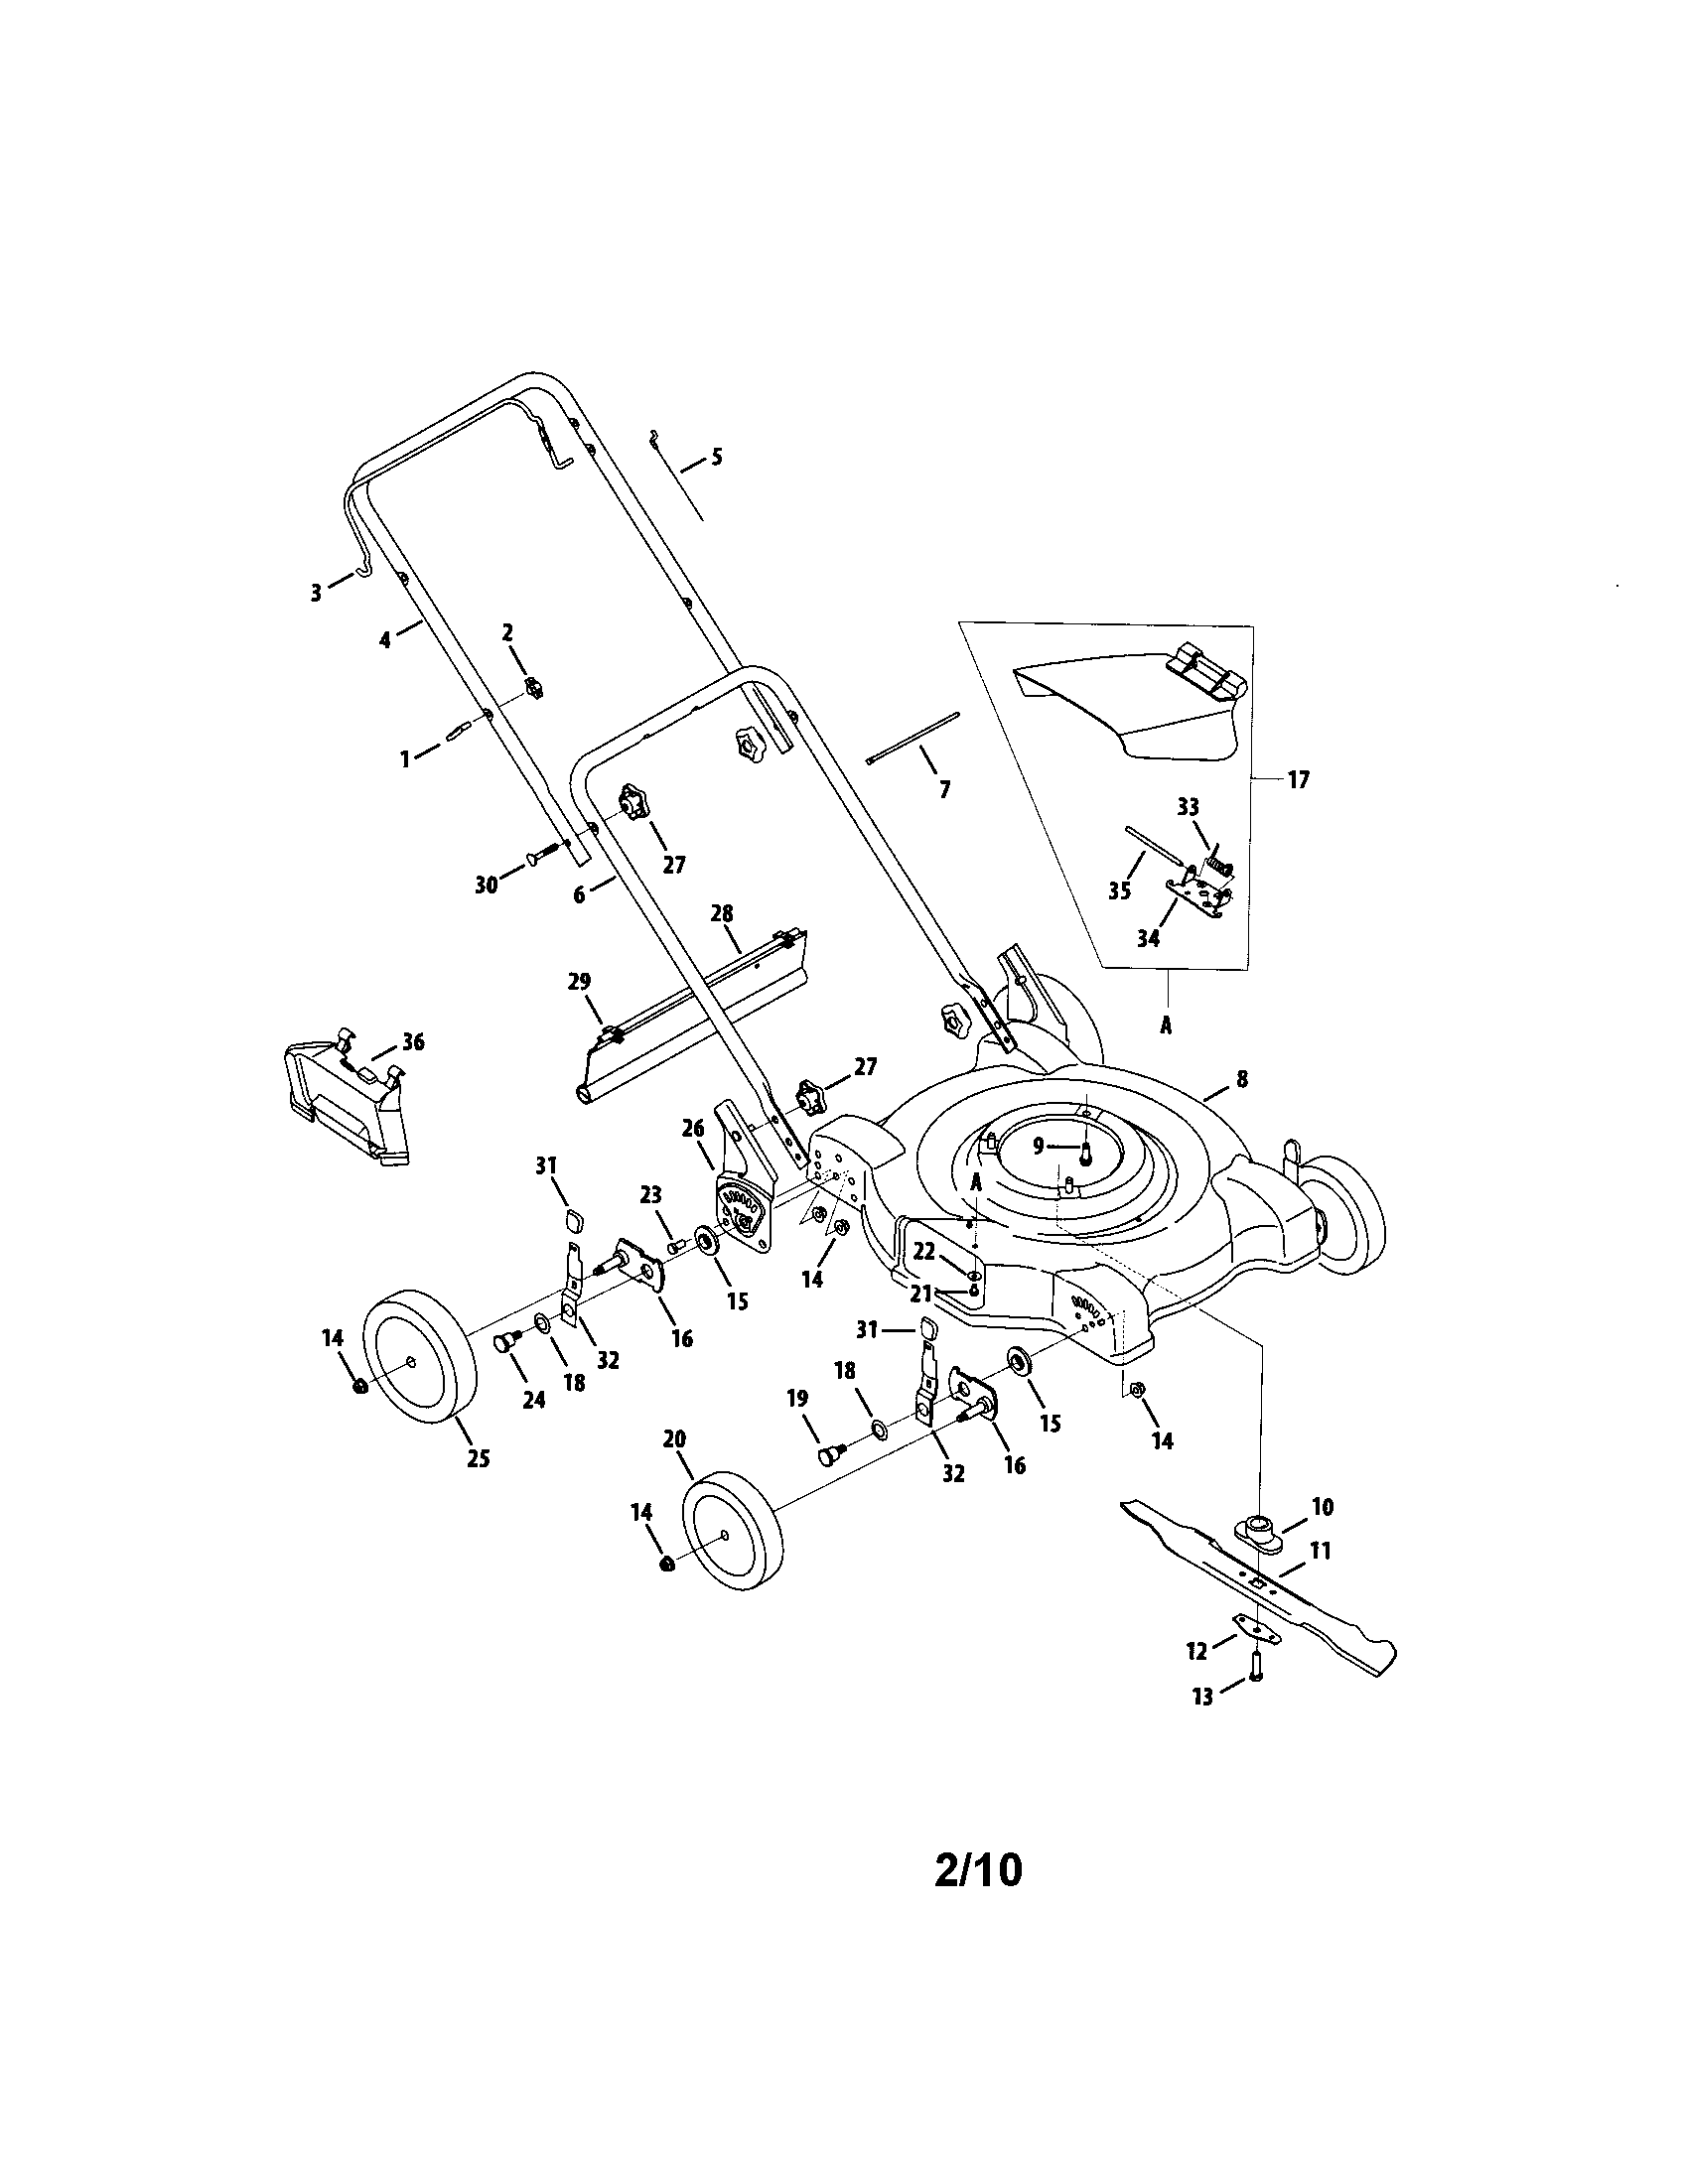 Mtd model 080 walk behind lawnmower, gas genuine parts